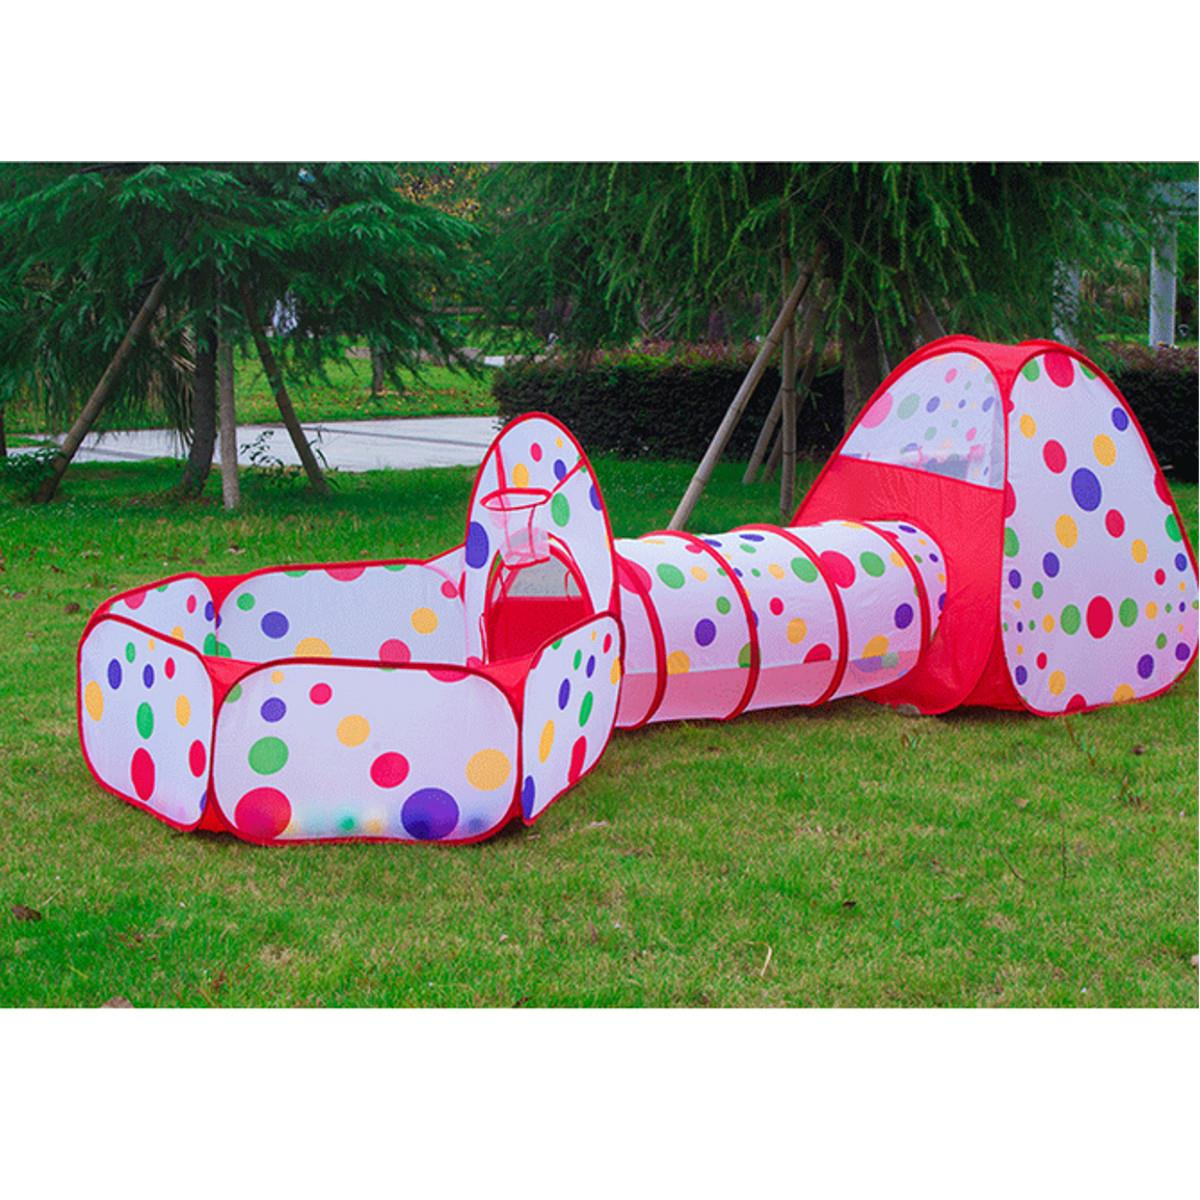 10 And Up For Outdoor Toys : Pcs set foldable kids toddler tunnel pop up play tent